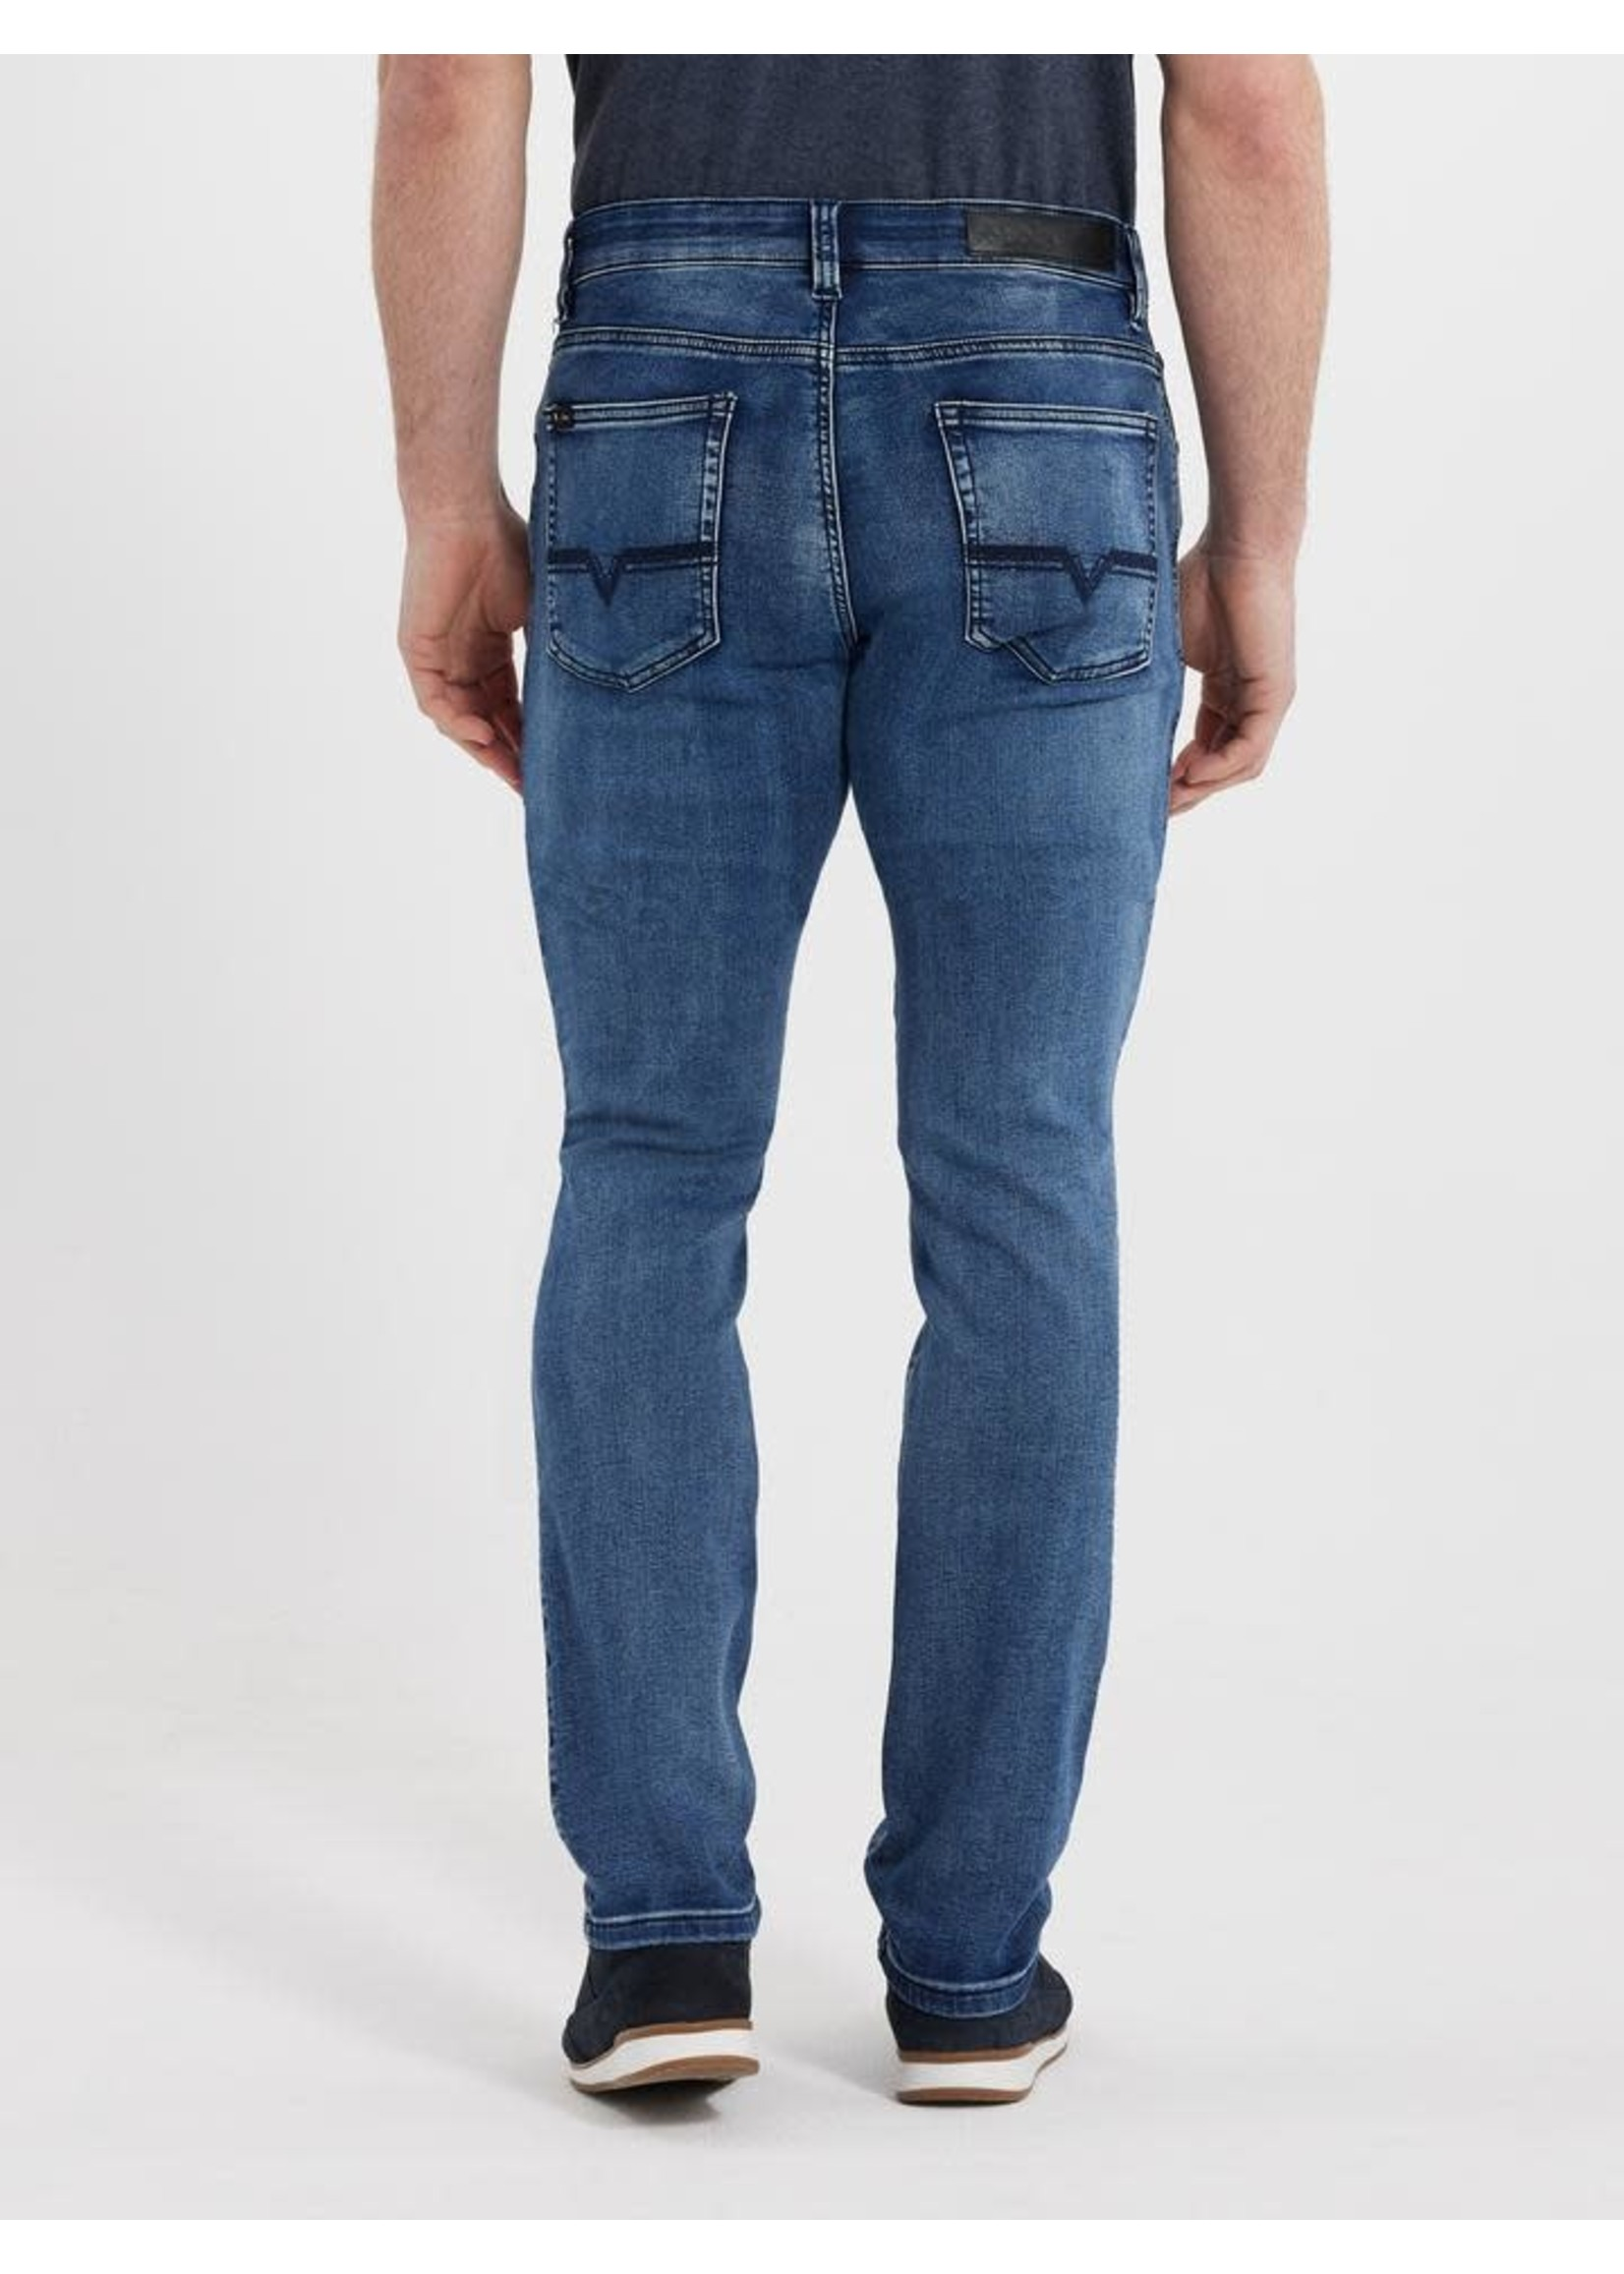 """Lois Jeans Canada The """"Peter Slim 6500"""" by Lois Jeans"""